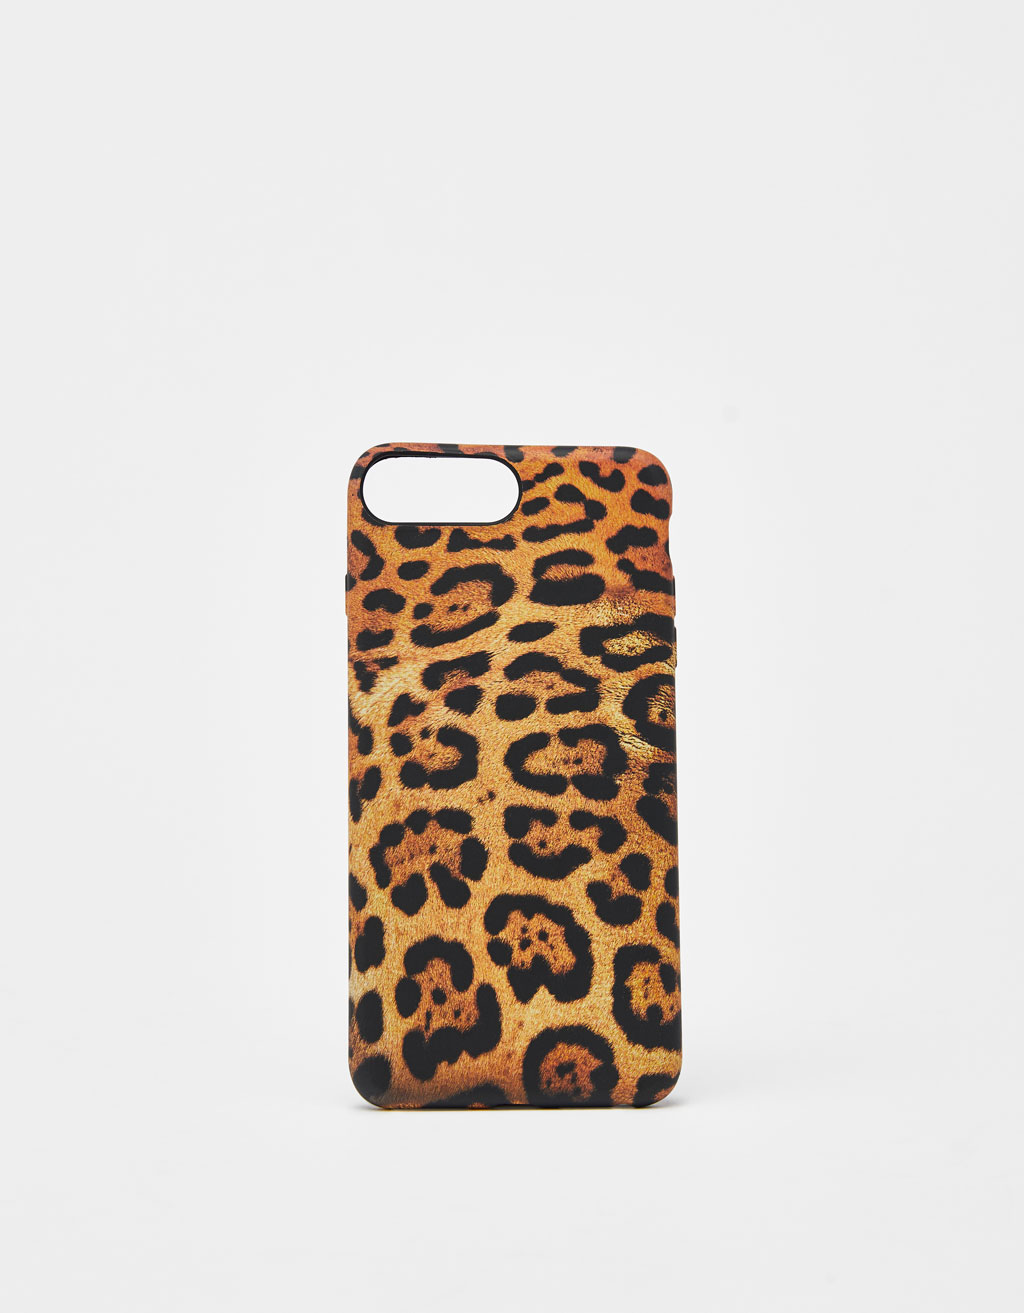 Carcasa de leopardo iPhone 6 plus/7 plus/8 plus